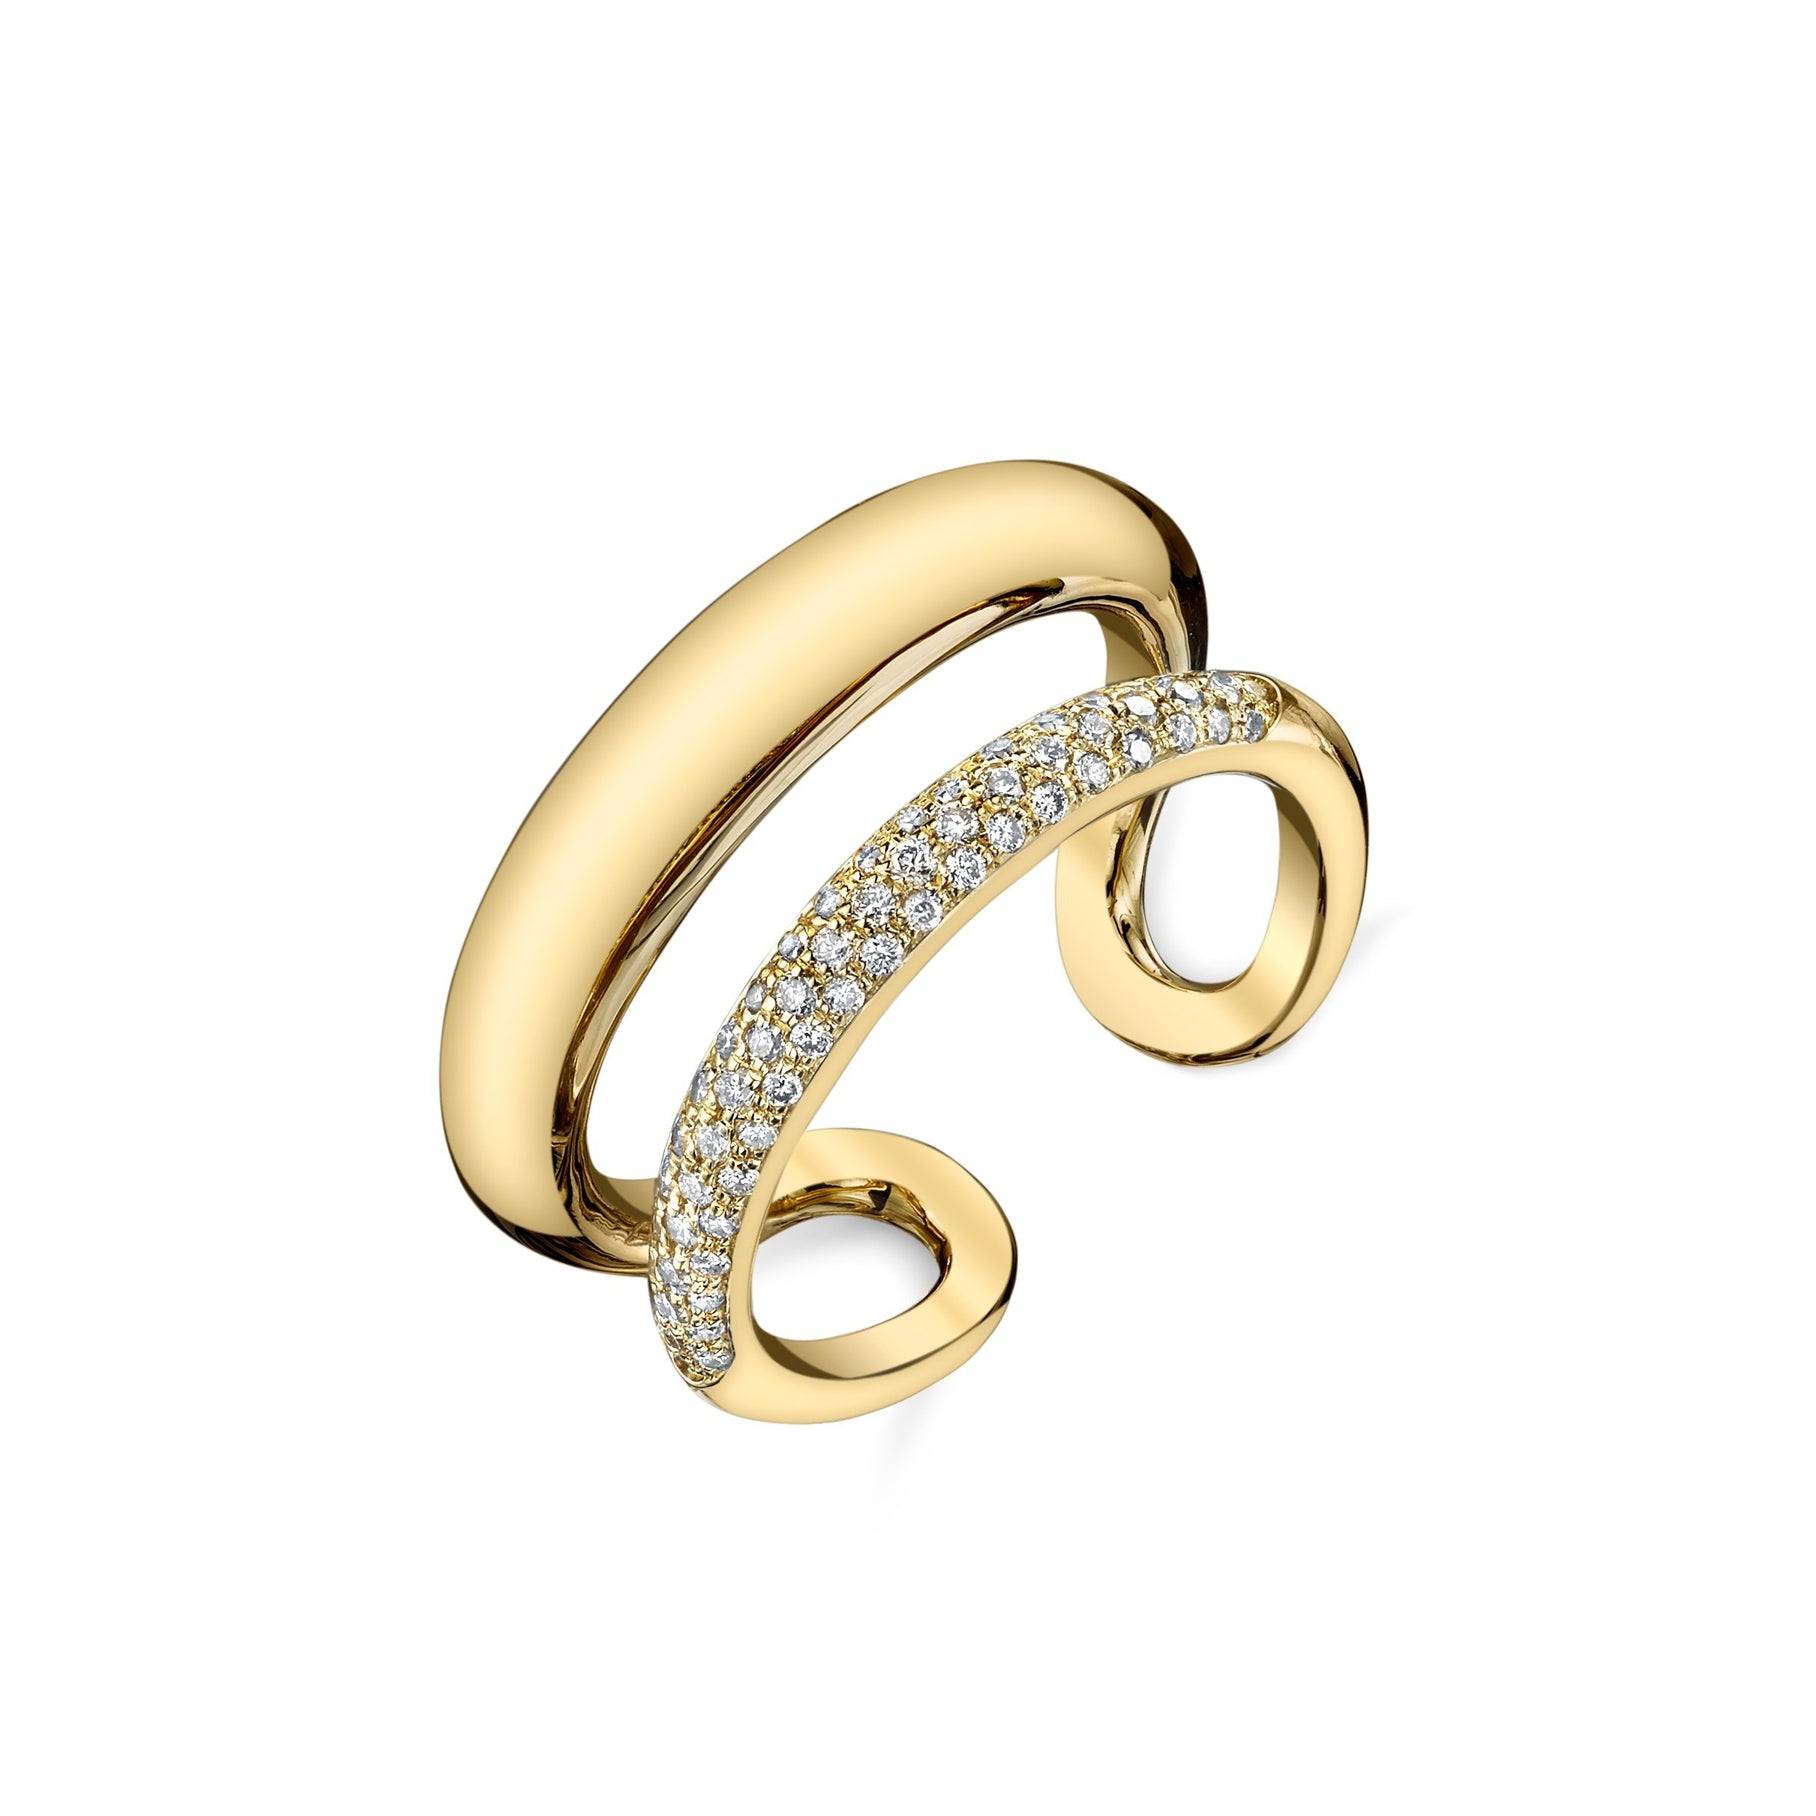 Twin Tusk Ring With Half White Pavé - Gabriela Artigas